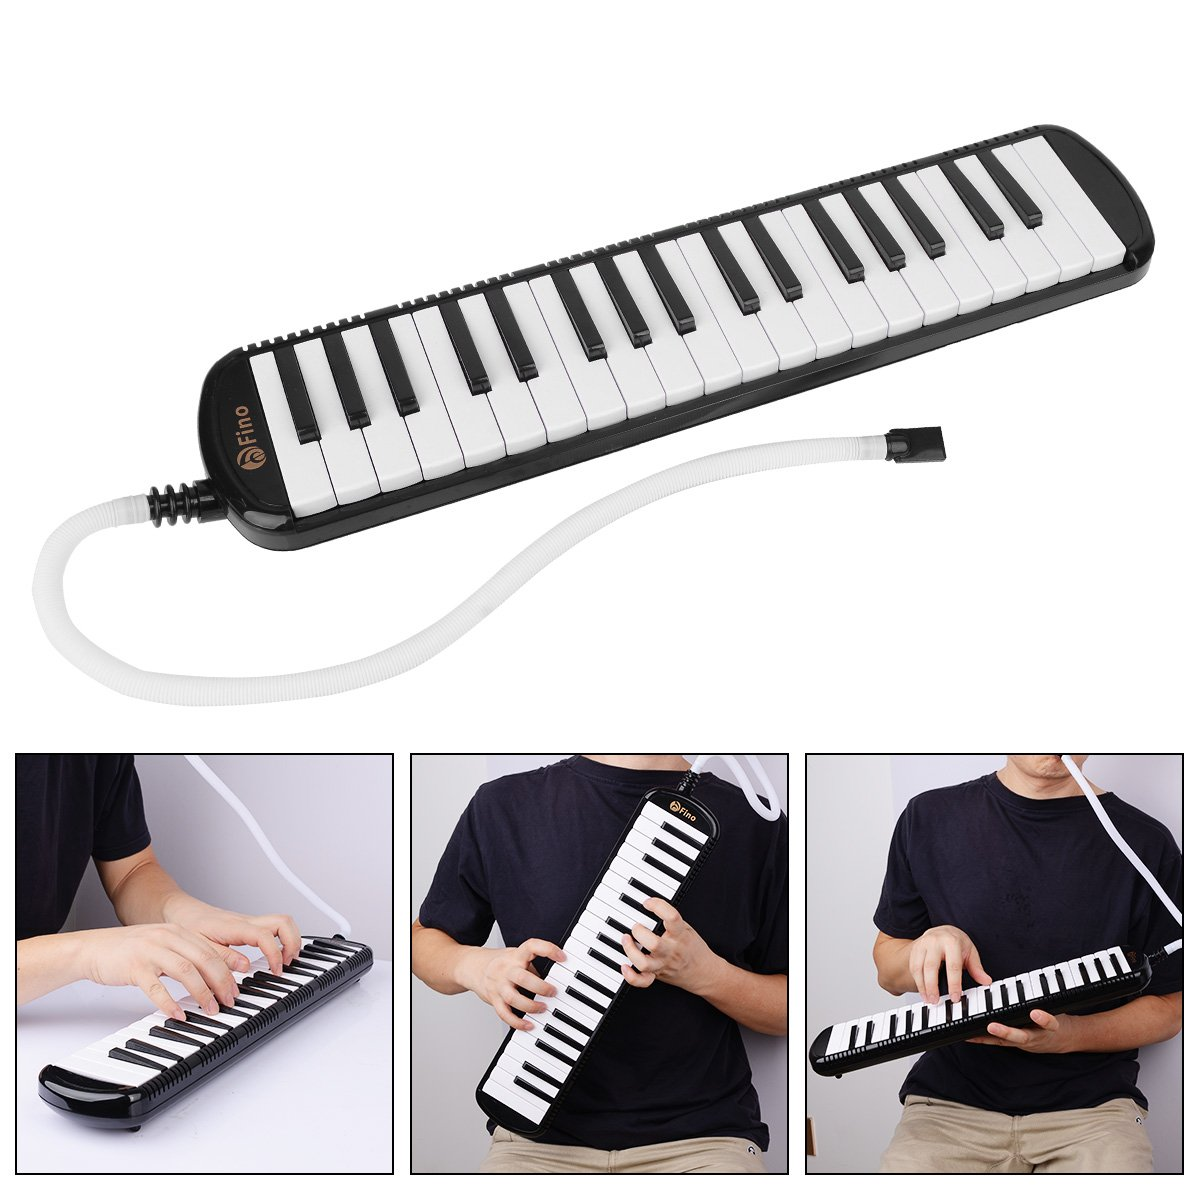 FINO 37Key Melodica Instrument Kit Pianica Wind Musical Instruments Air Piano Keyboards with Mouthpiece Tube Set Portable for Music Lovers Beginners Gift with Carrying Bag Black